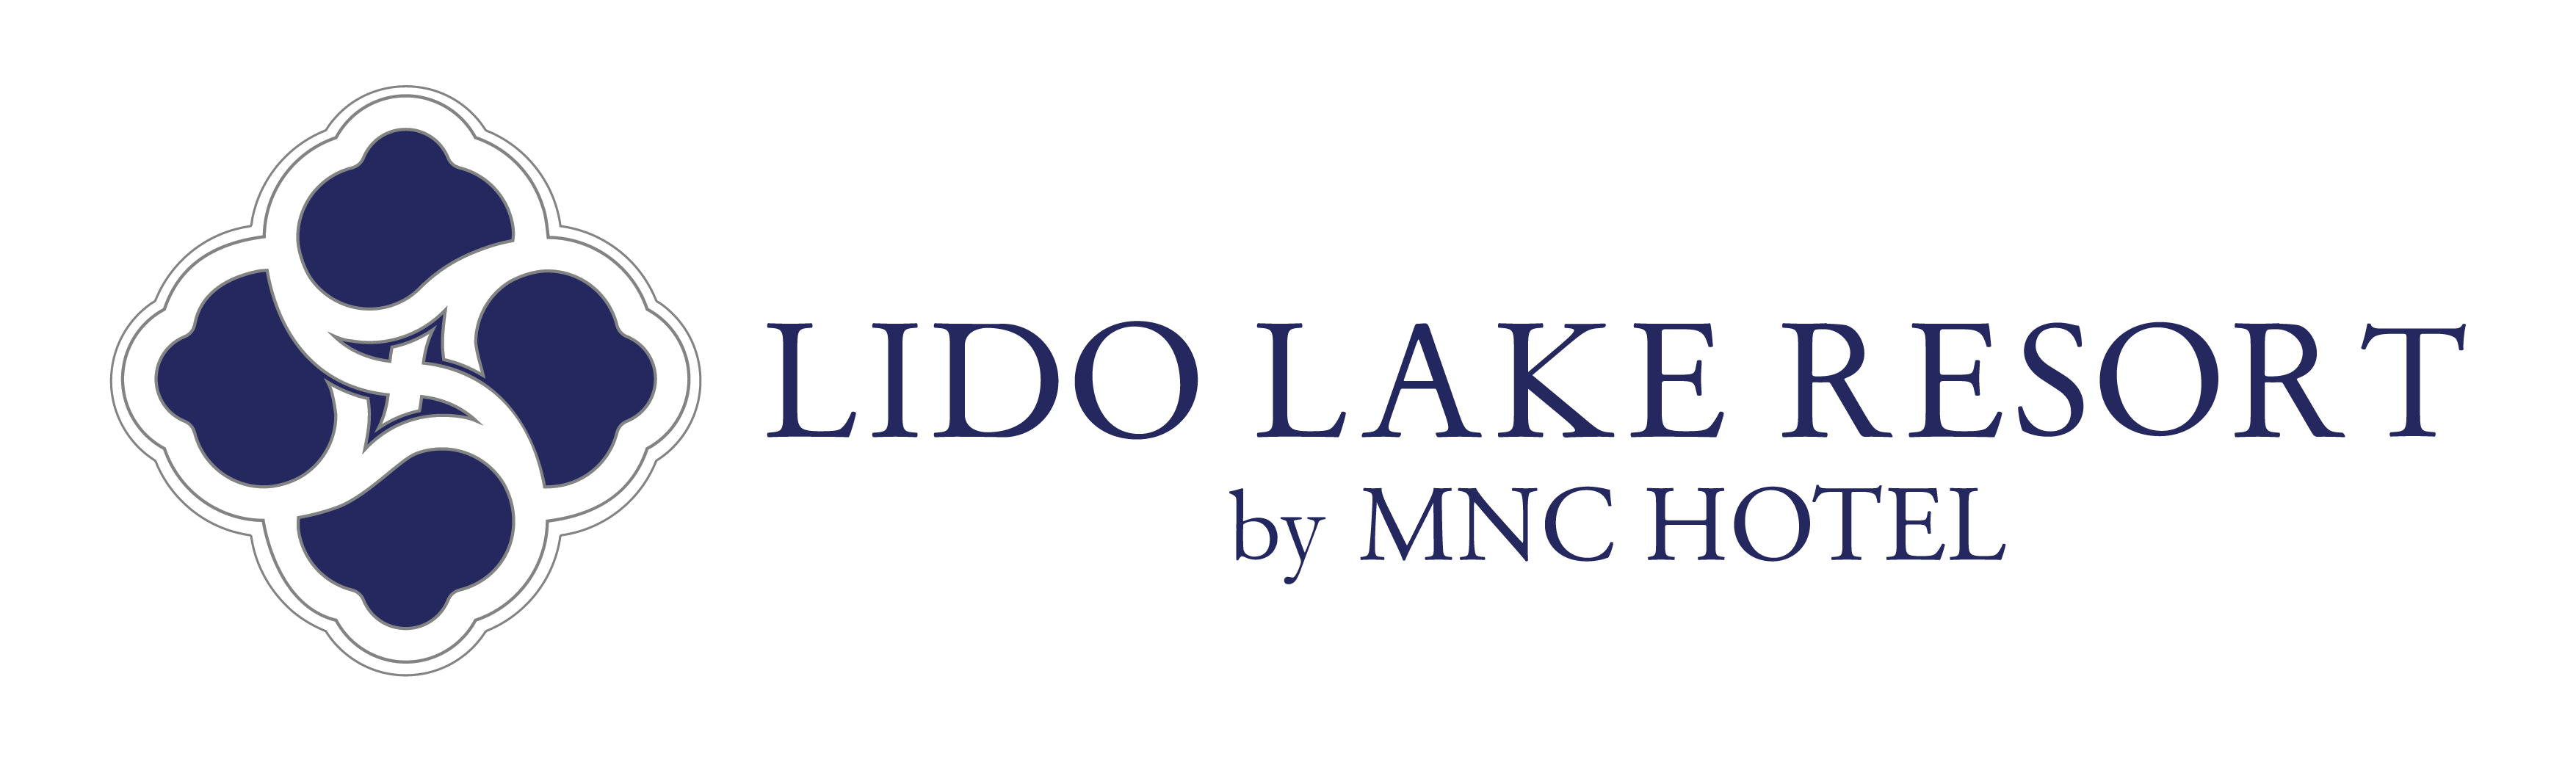 Lido Lake Resort